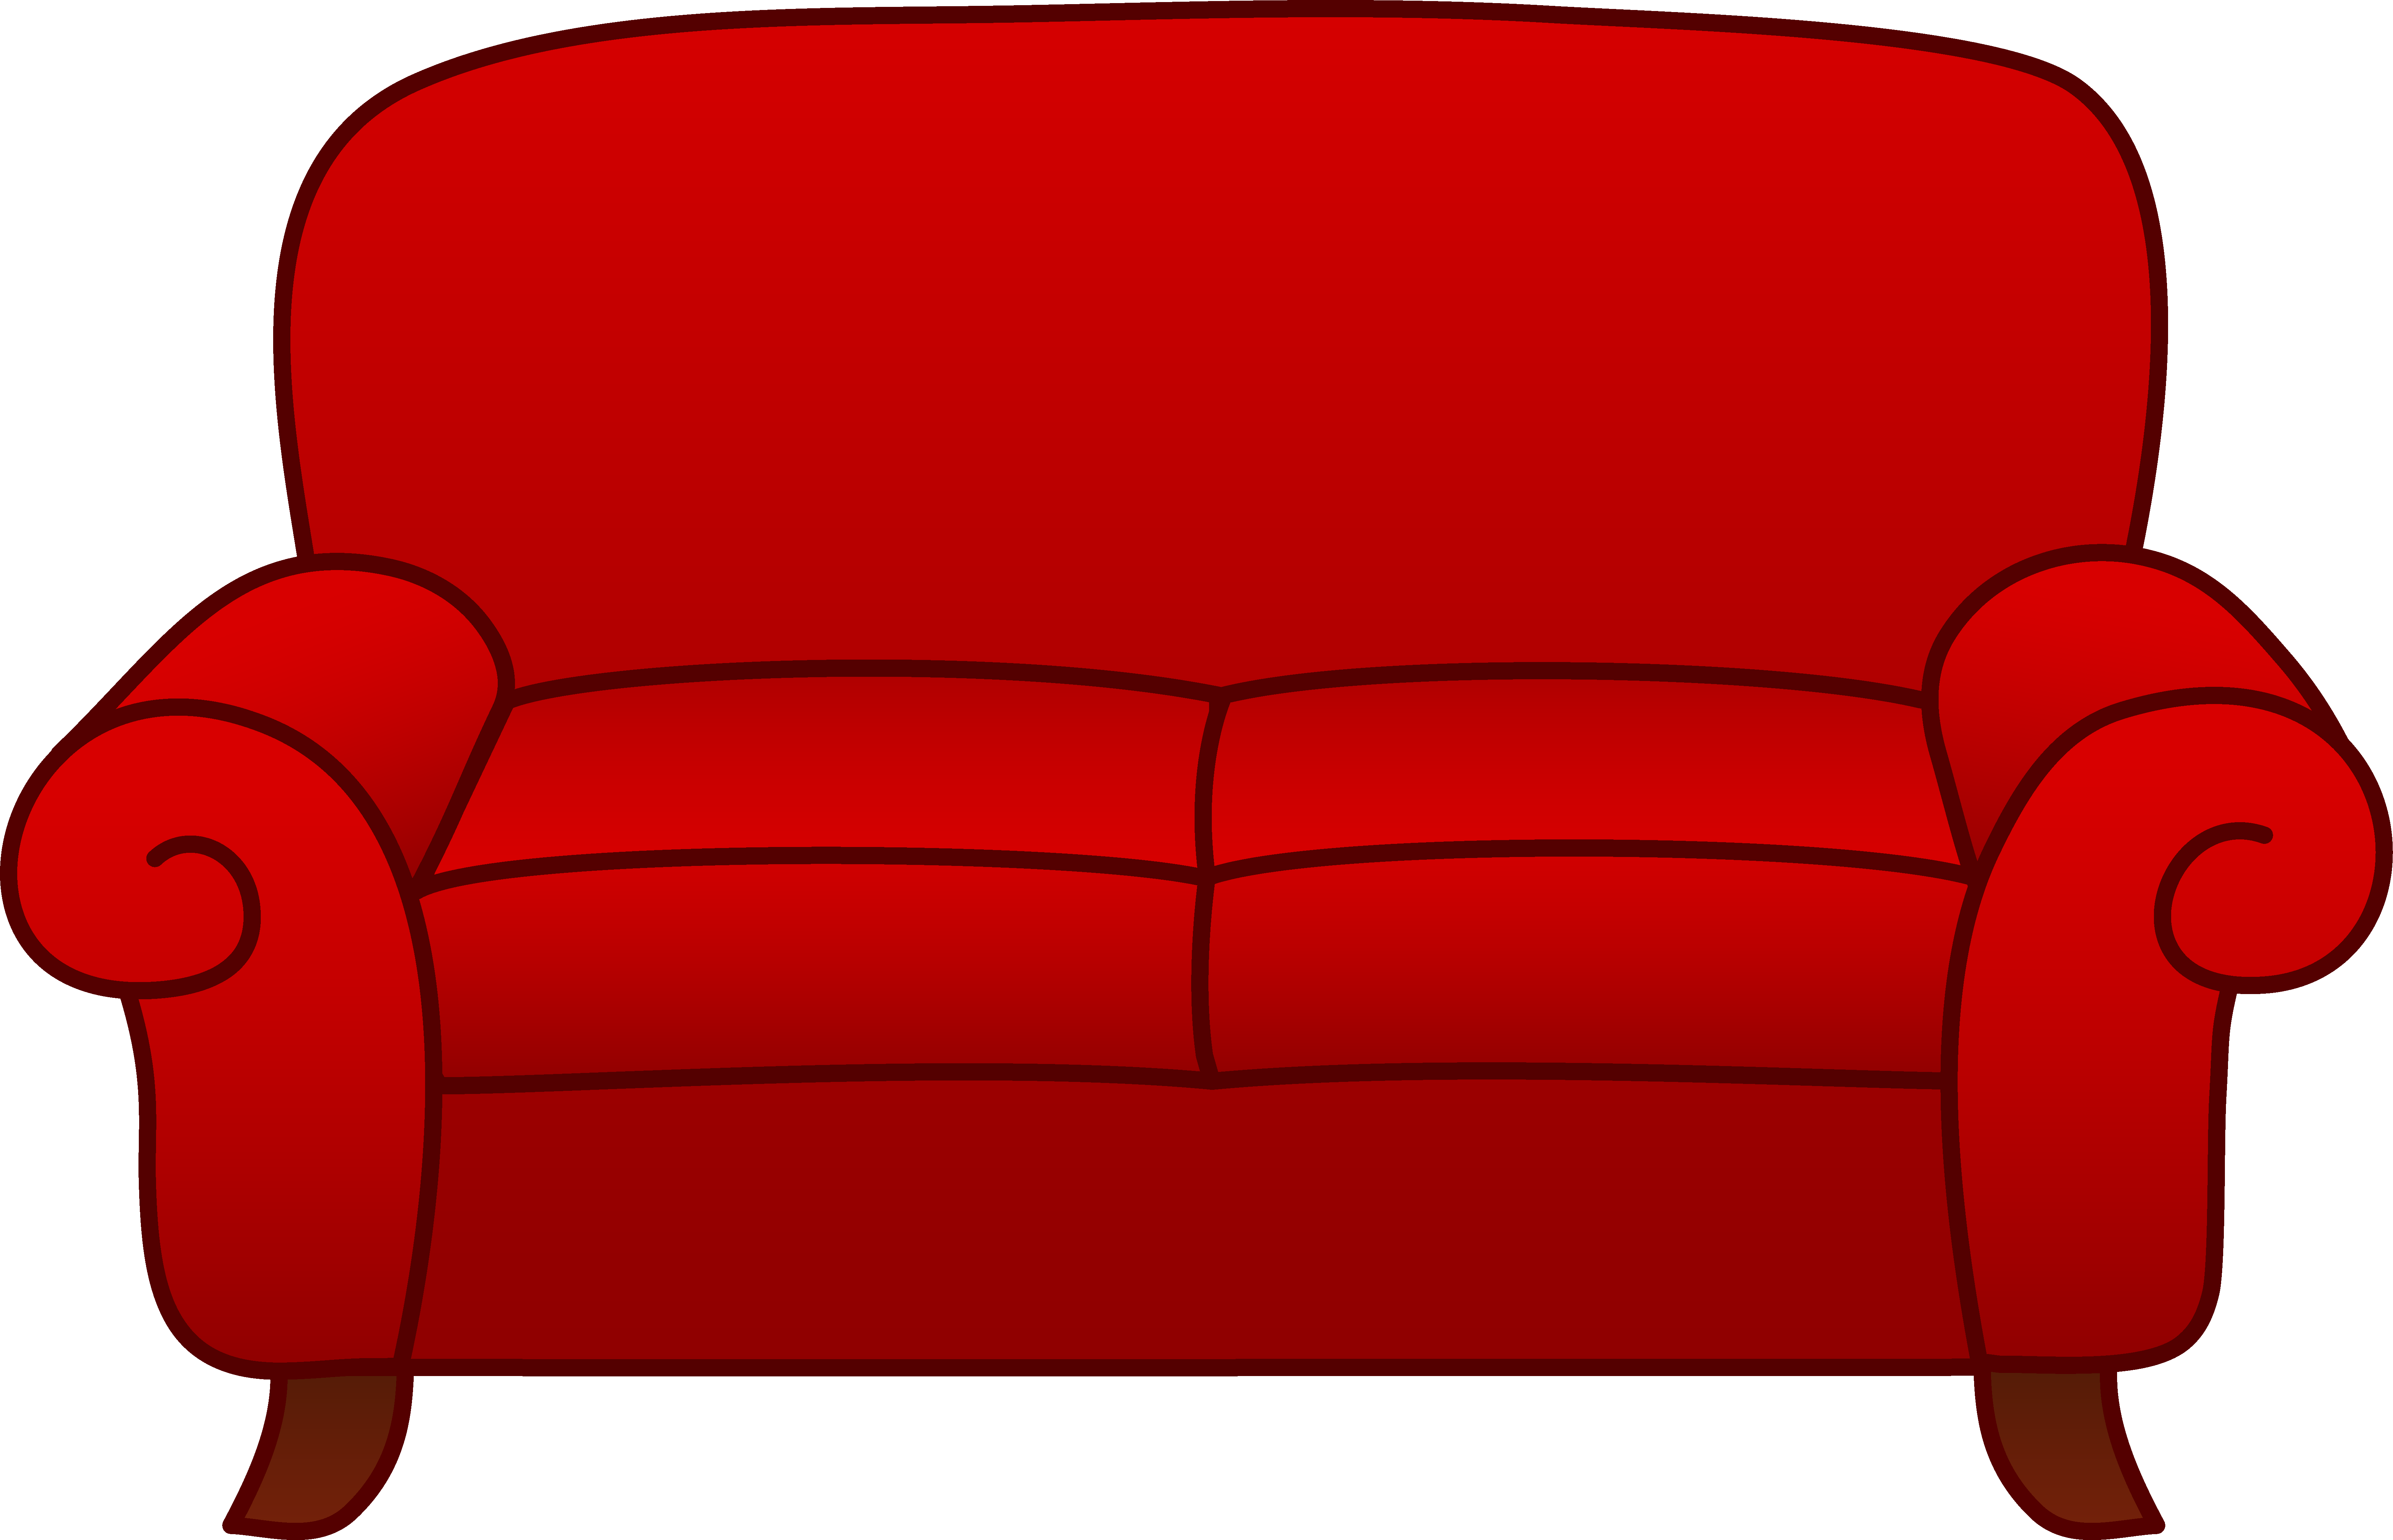 Collection of Sofa clipart | Free download best Sofa clipart ...